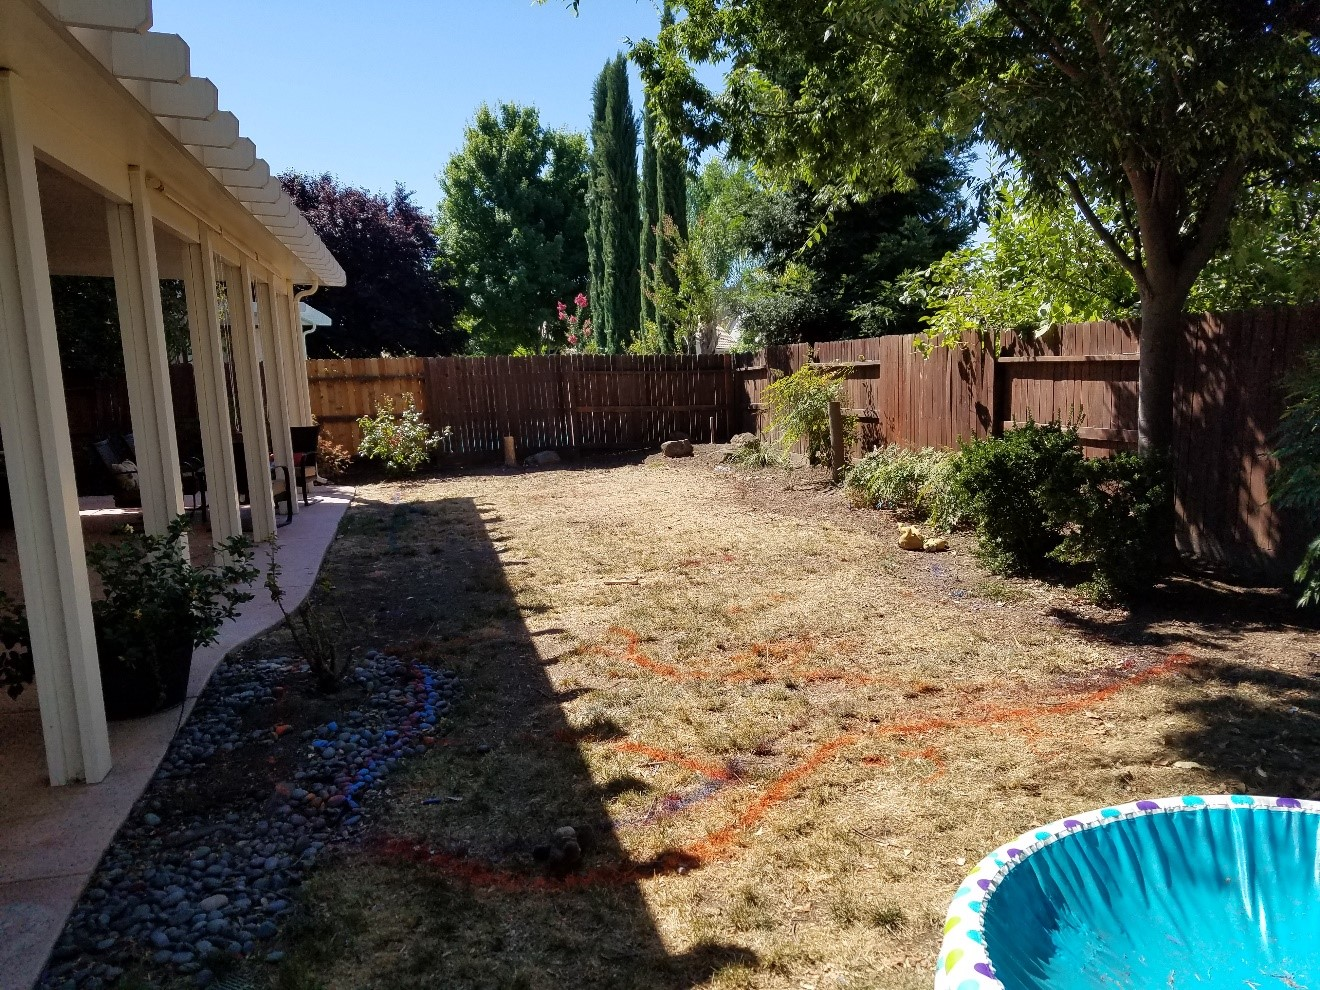 Perspective of Yard where the Pool will be installed